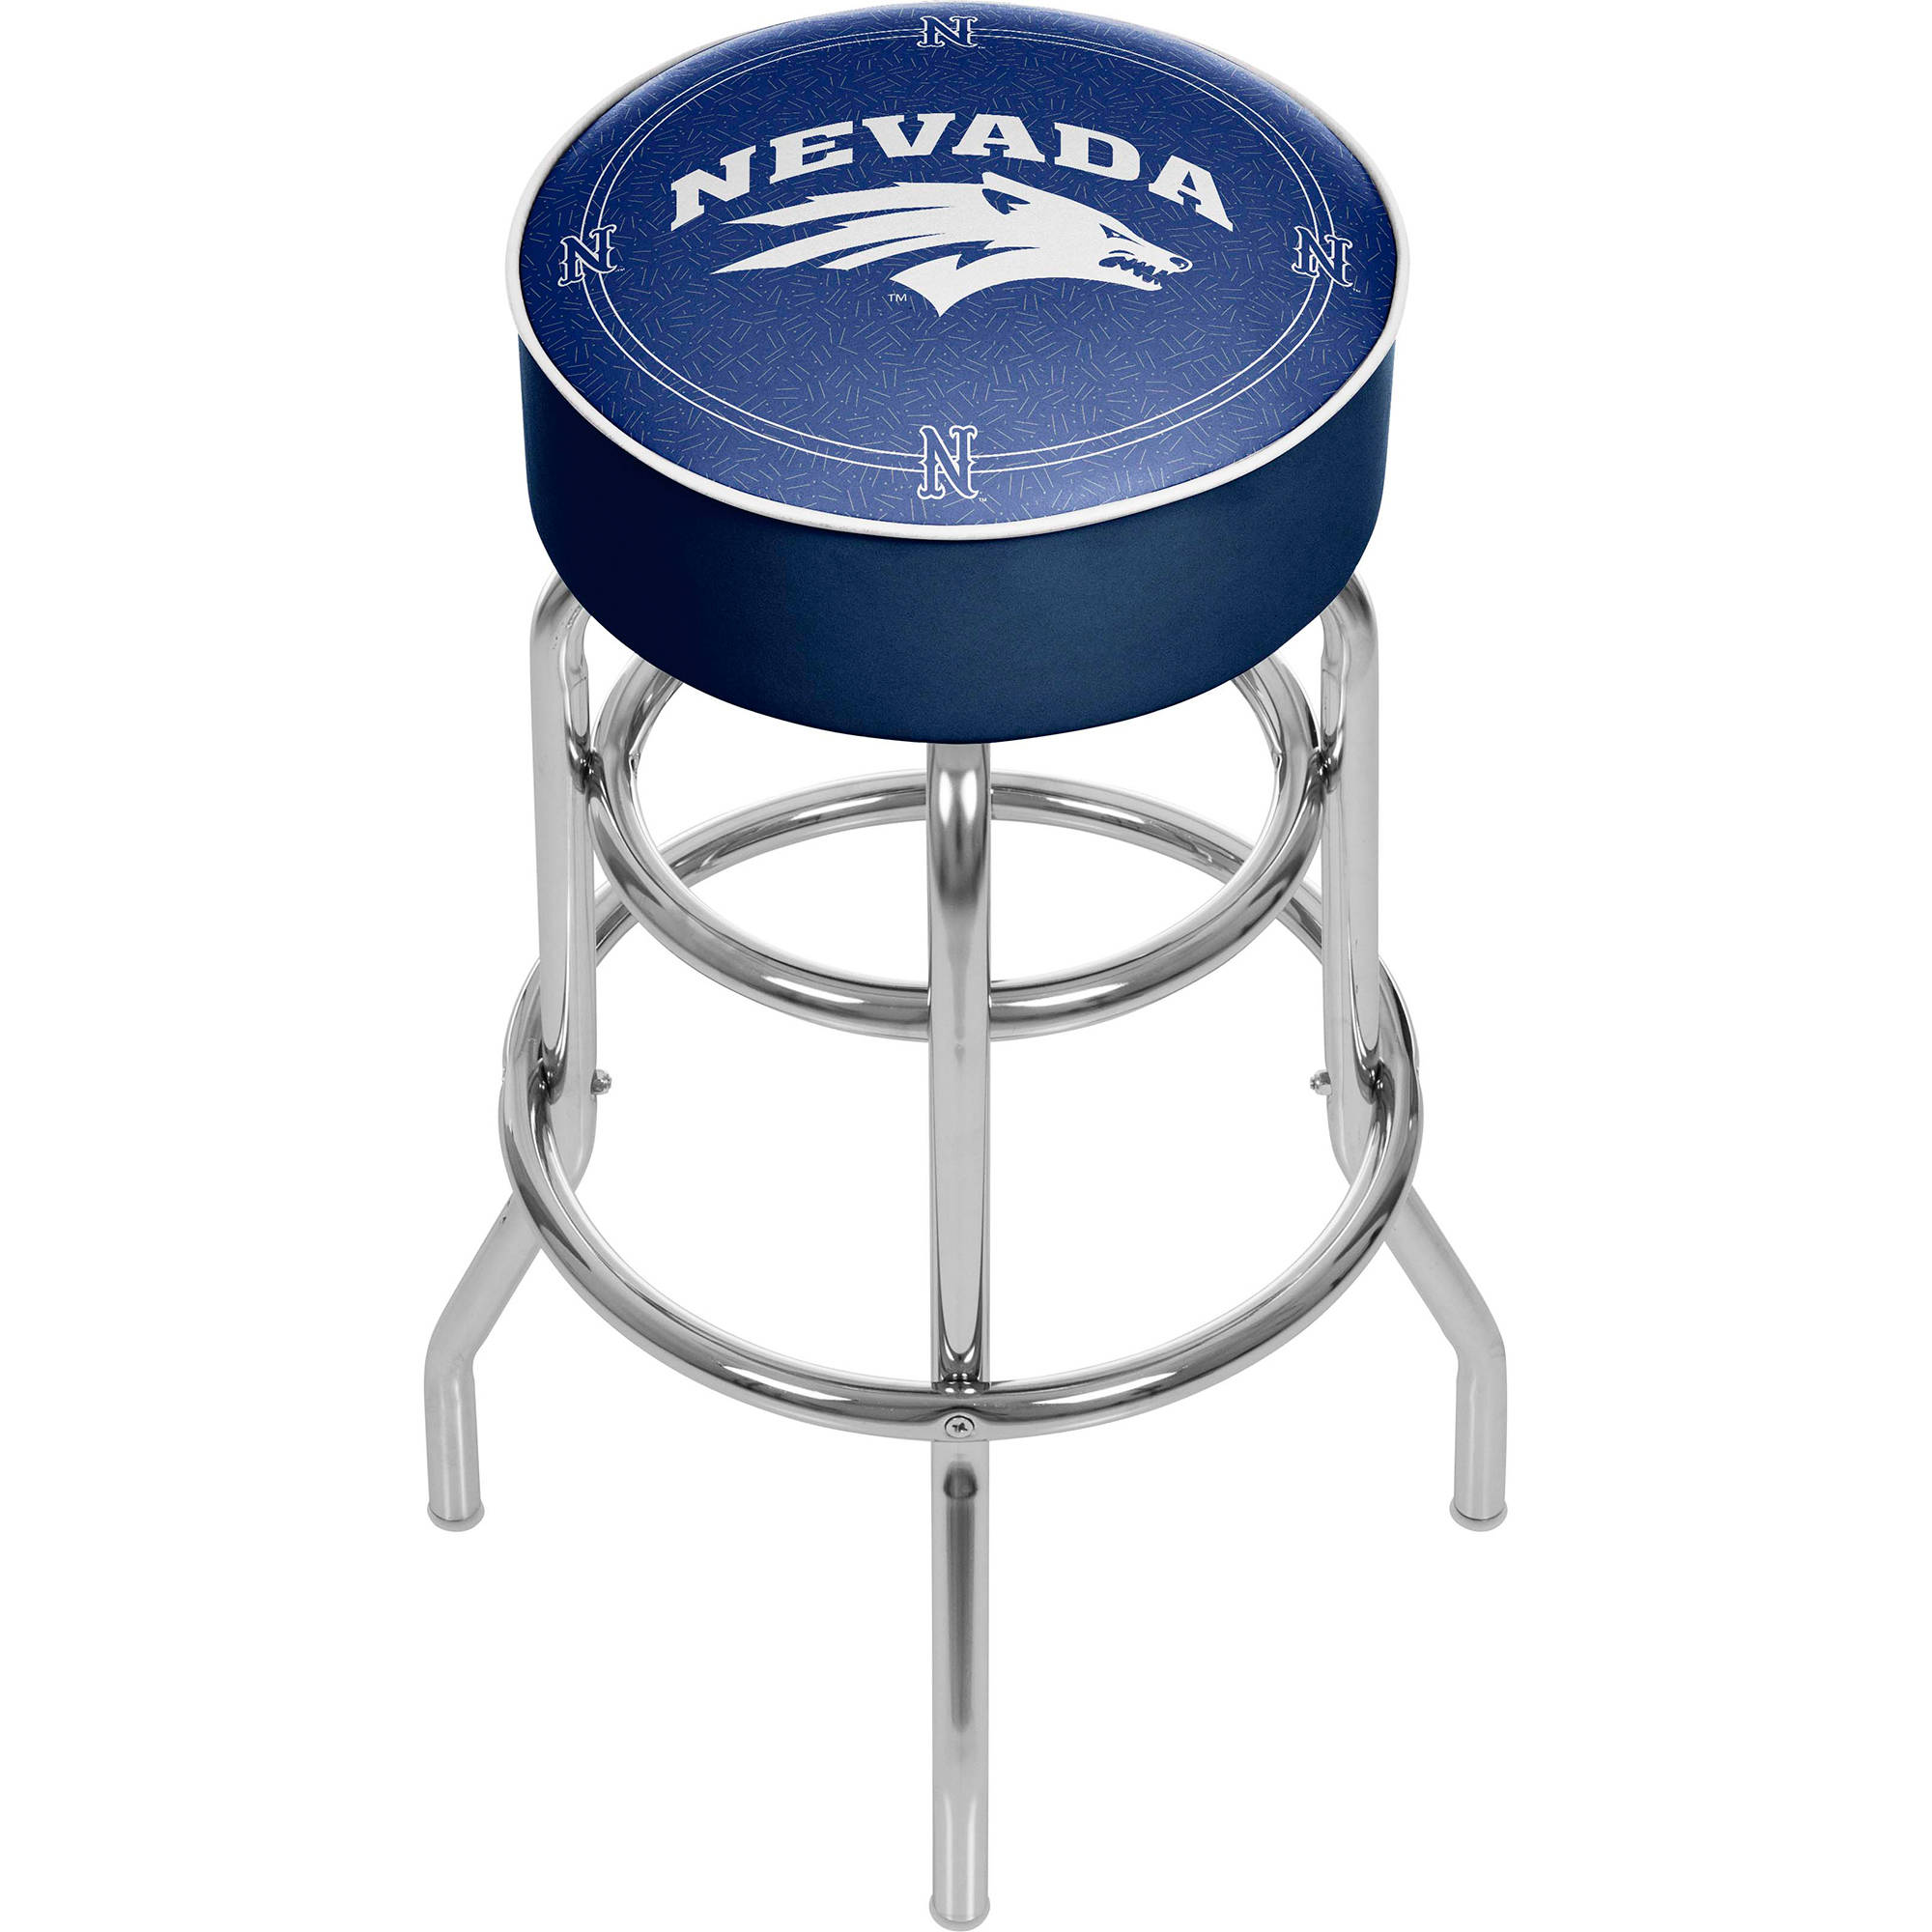 University of Nevada Padded Swivel Bar Stool